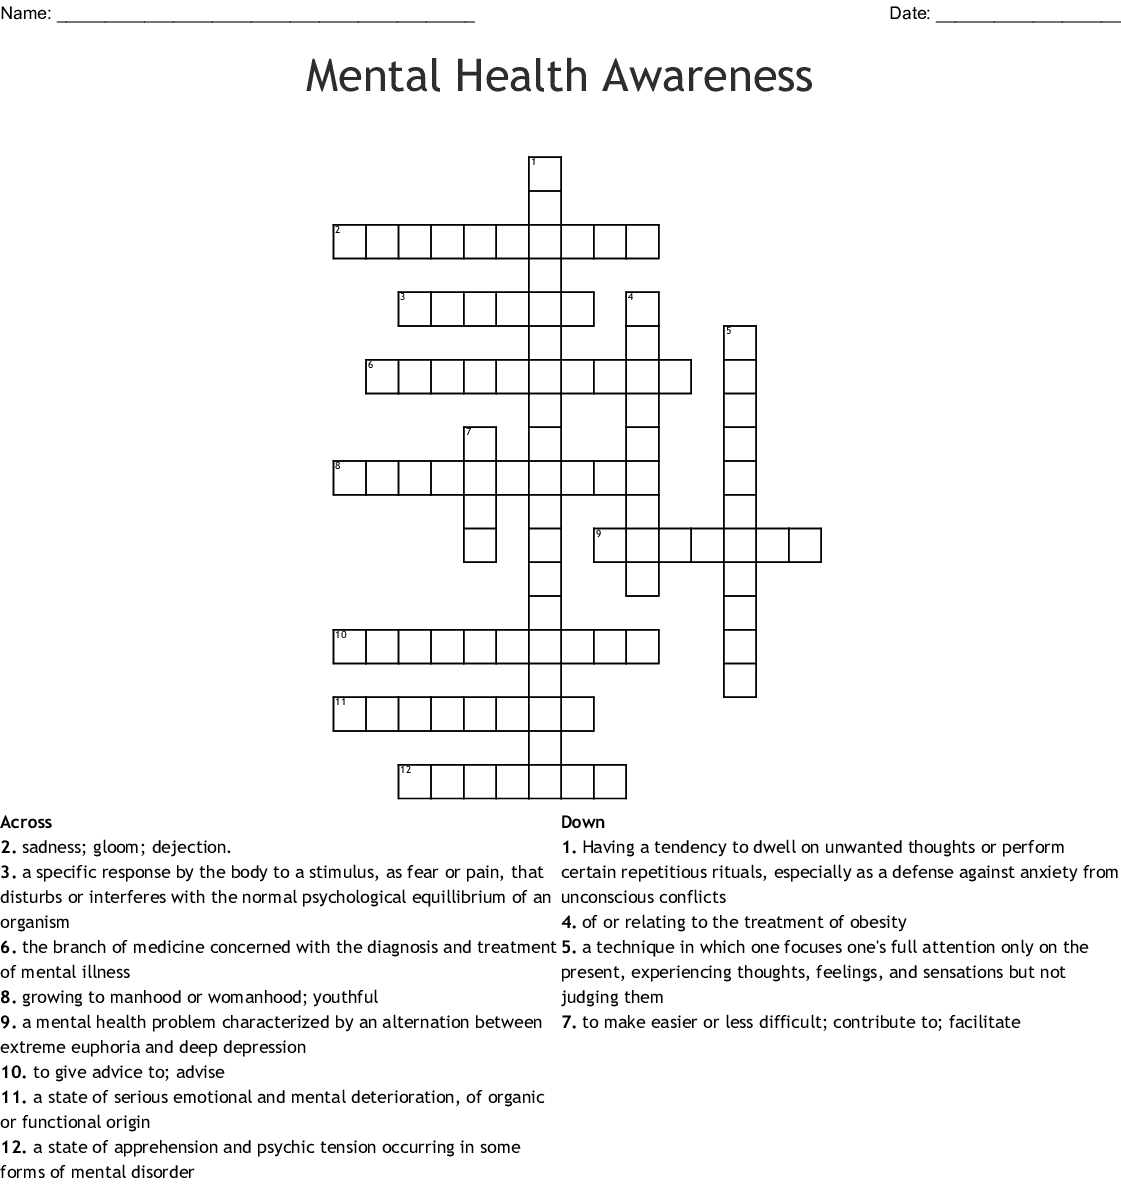 Mental Health Awareness Crossword